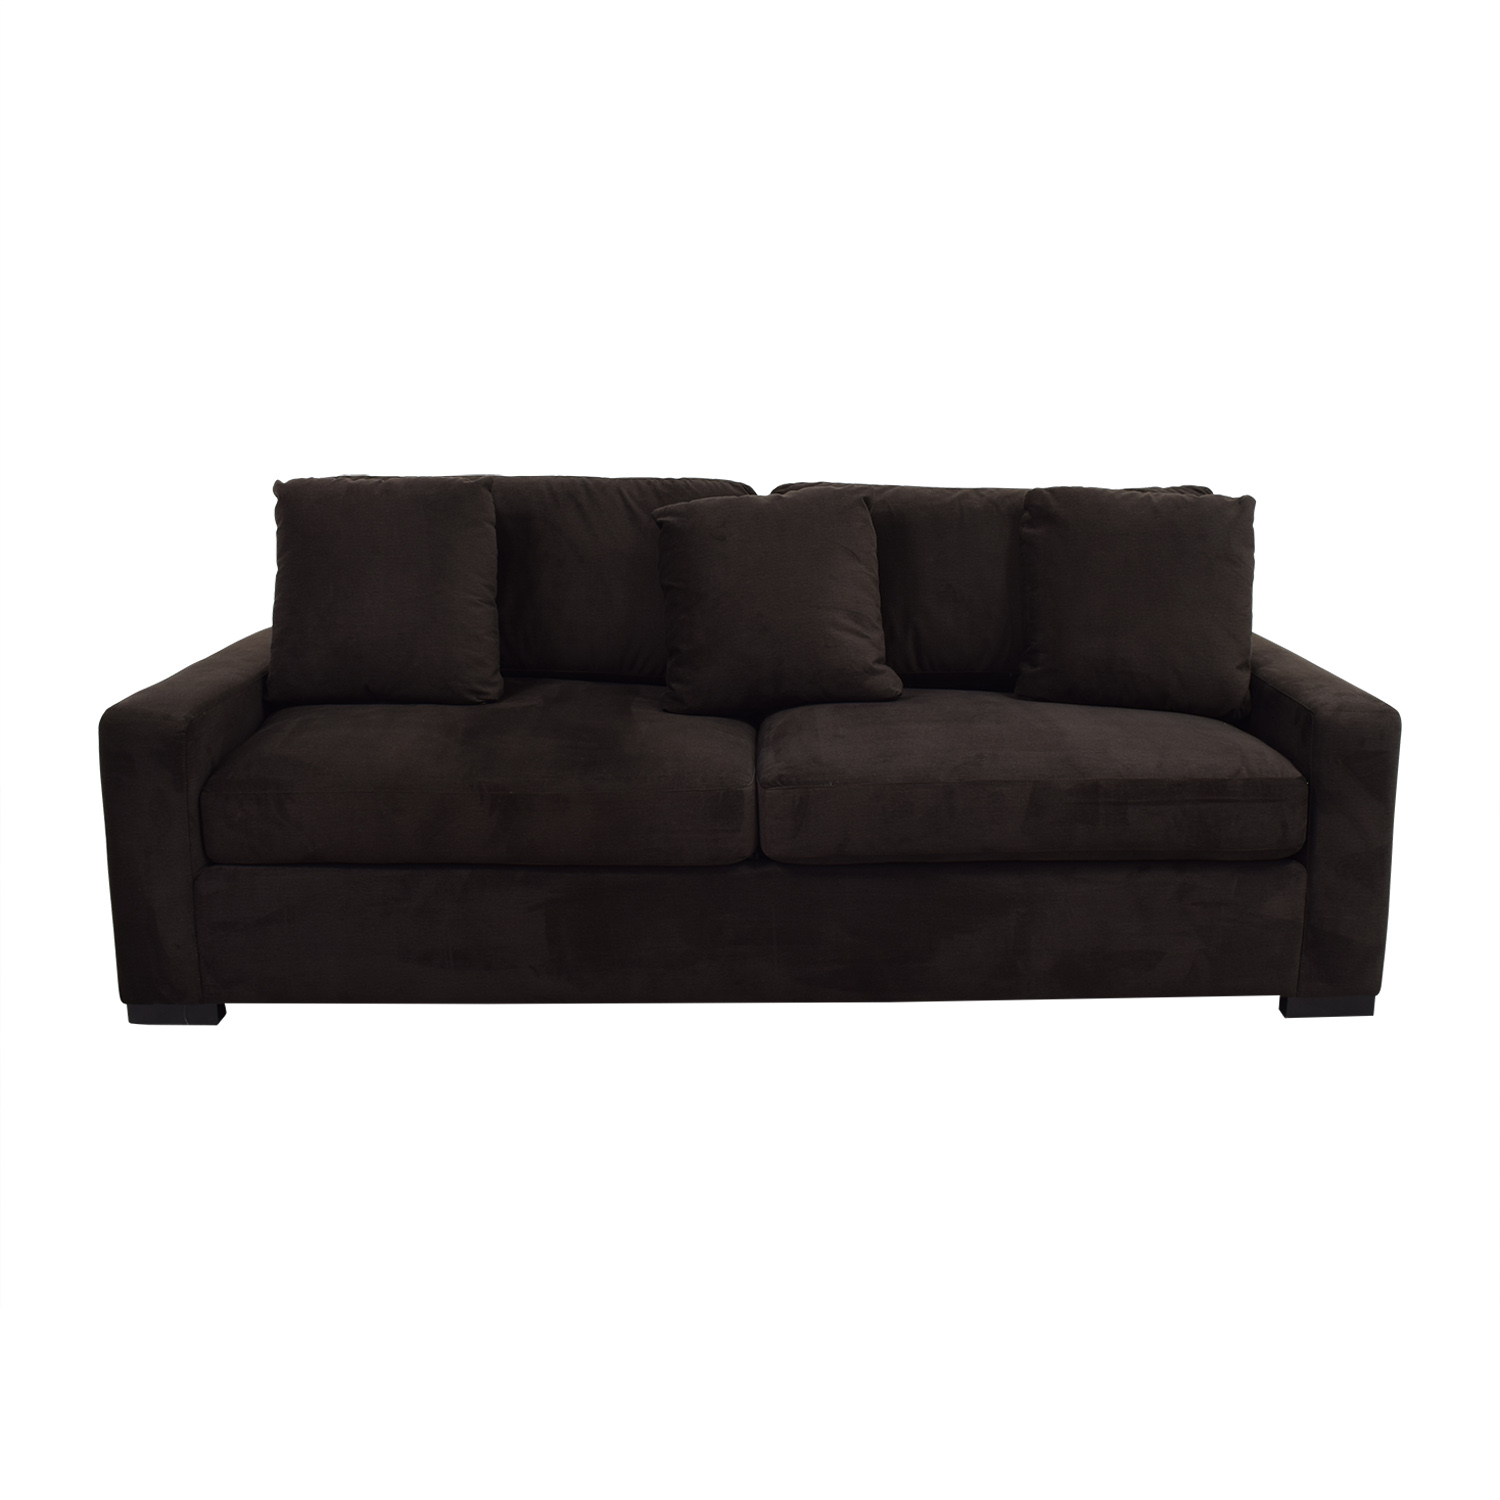 shop Bernhardt Bernhardt Jefferson Brown Sofa online